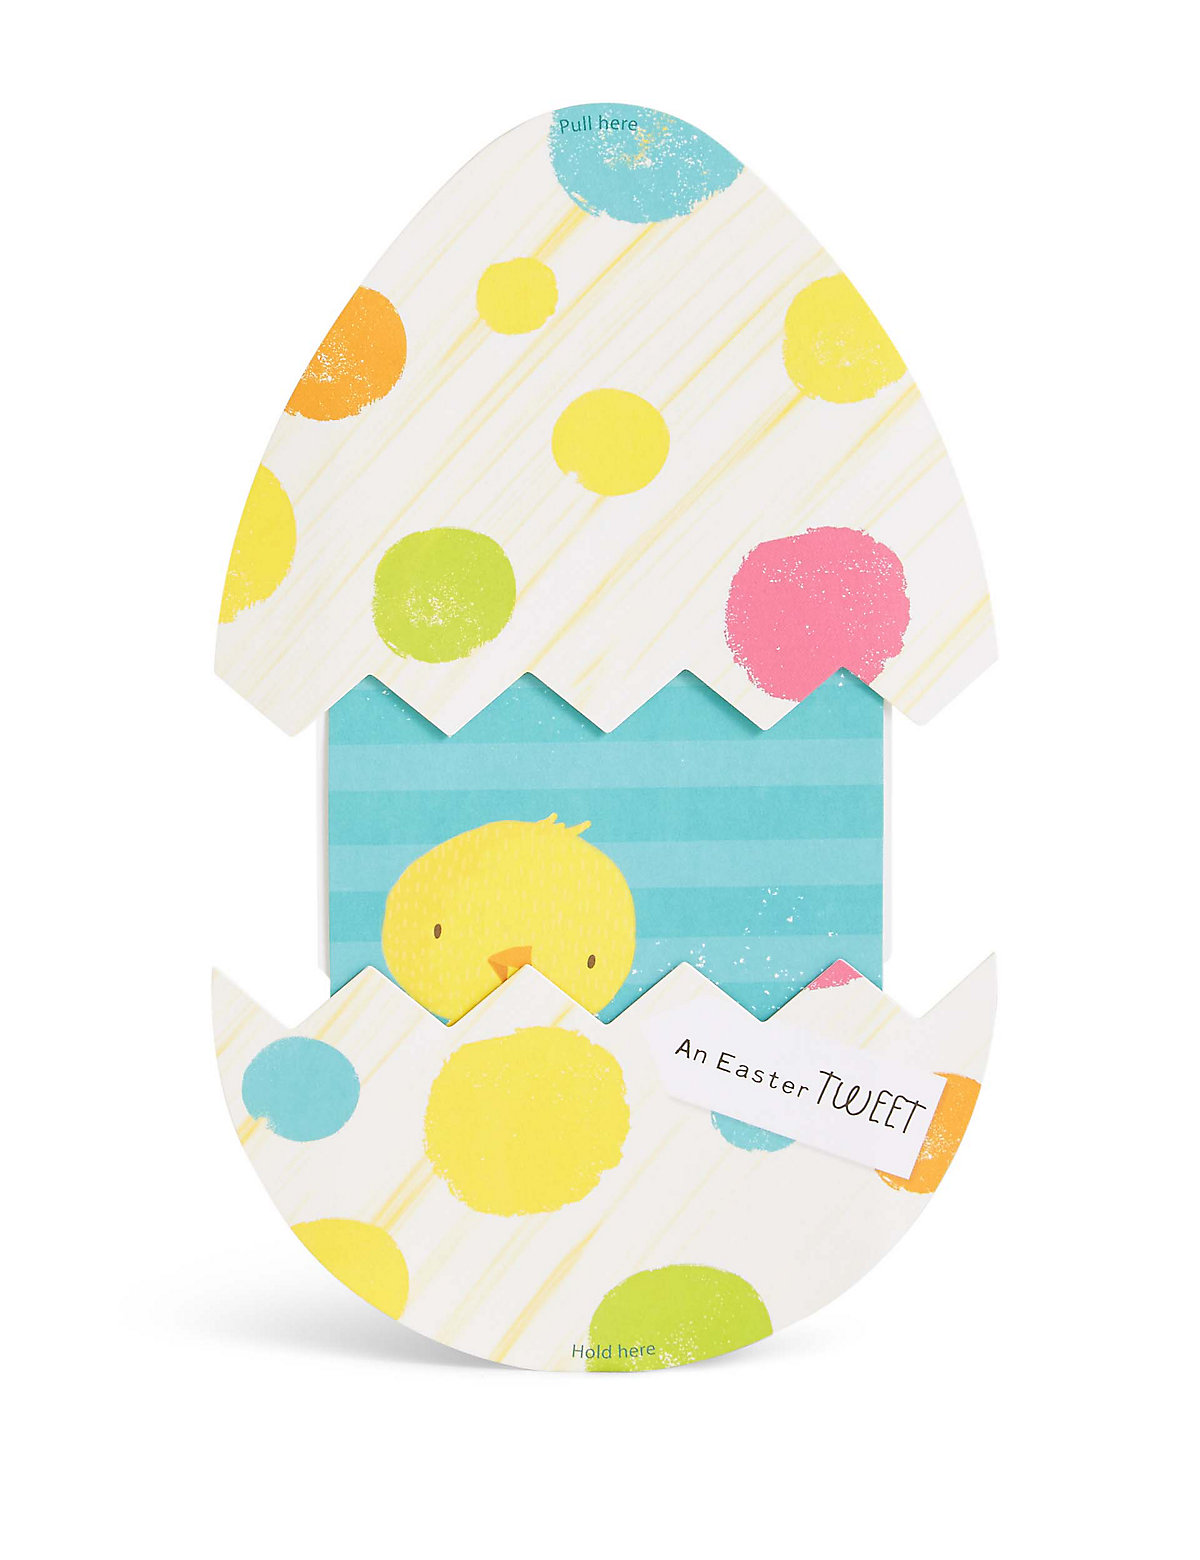 Egg-stra Special Money Holder Easter Card